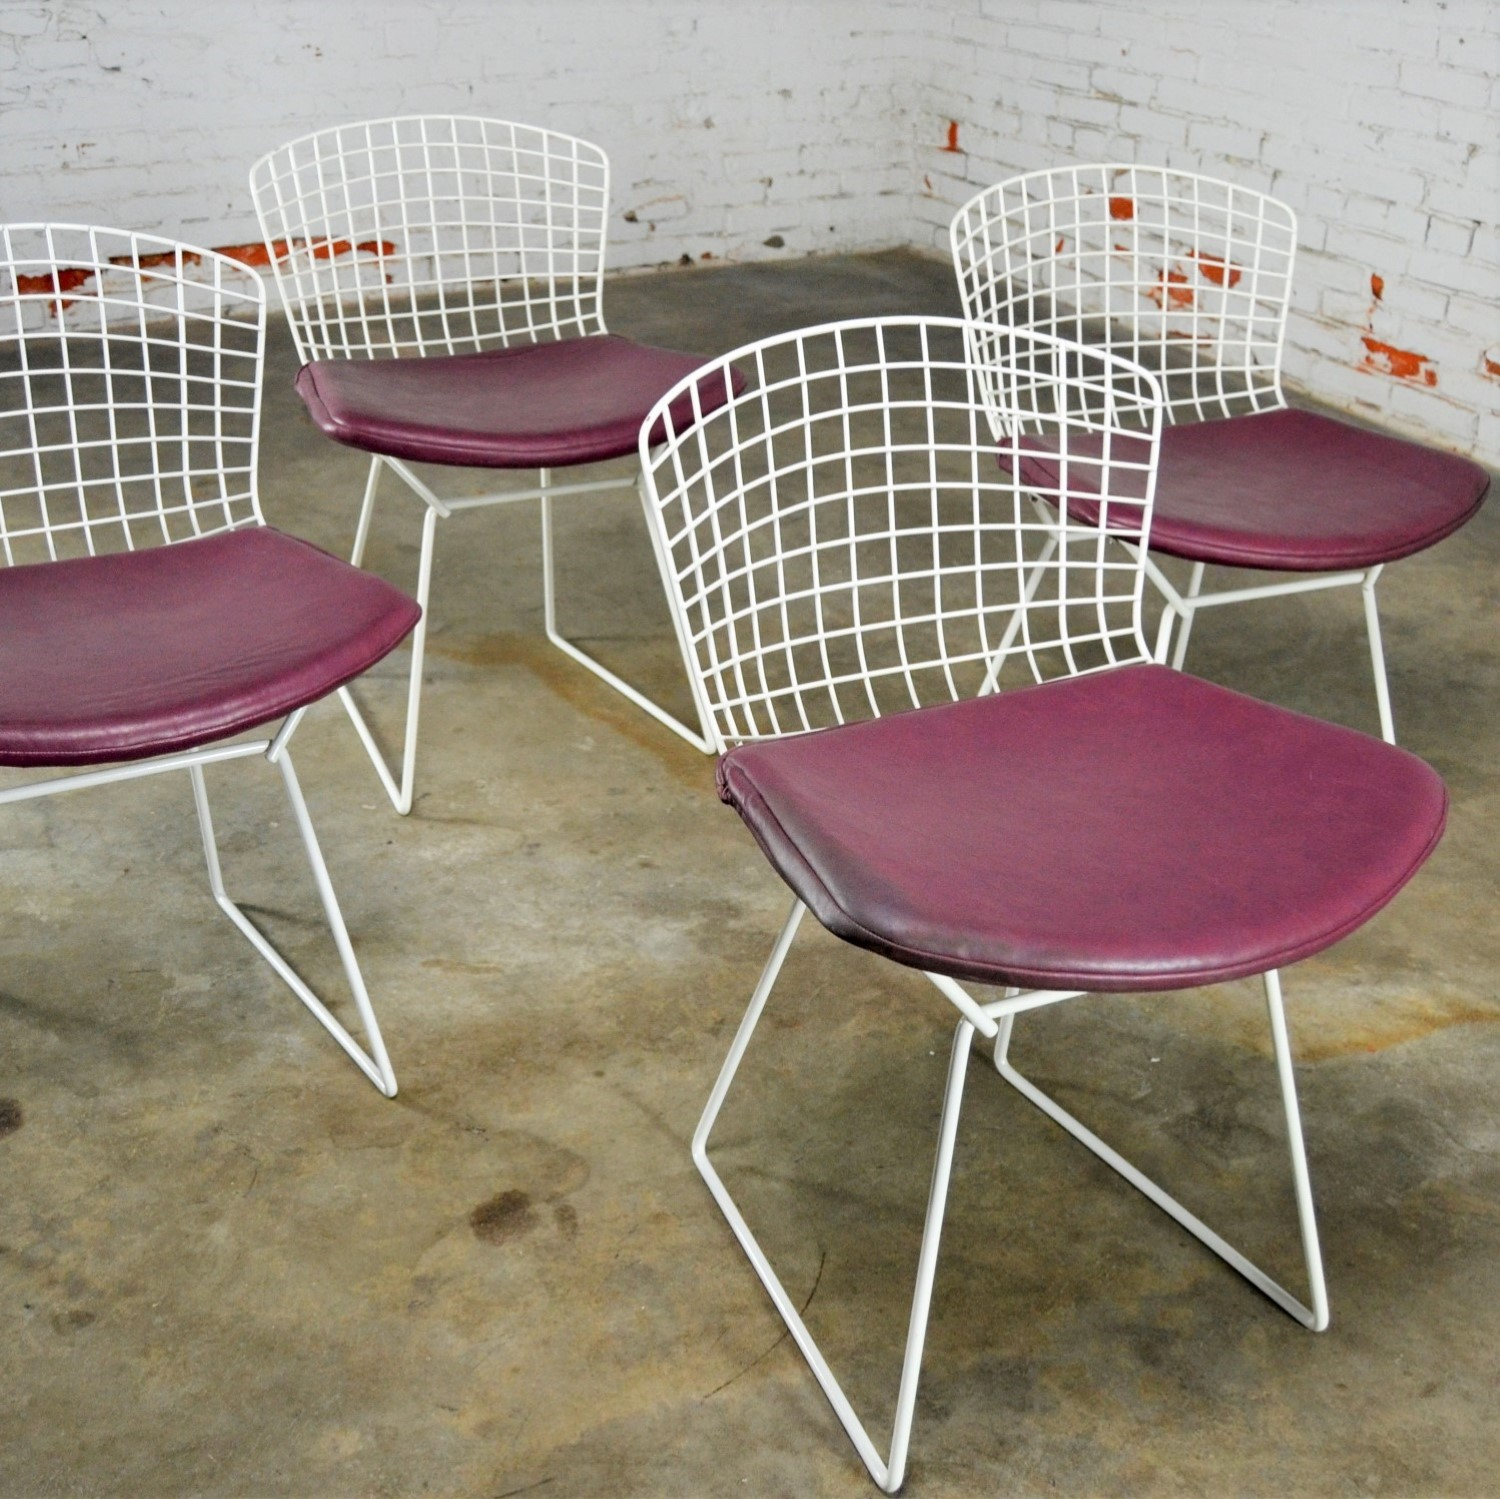 Vintage Mid Century Modern Bertoia White Wire Side Chairs W Purple Seat Cushions Warehouse 414